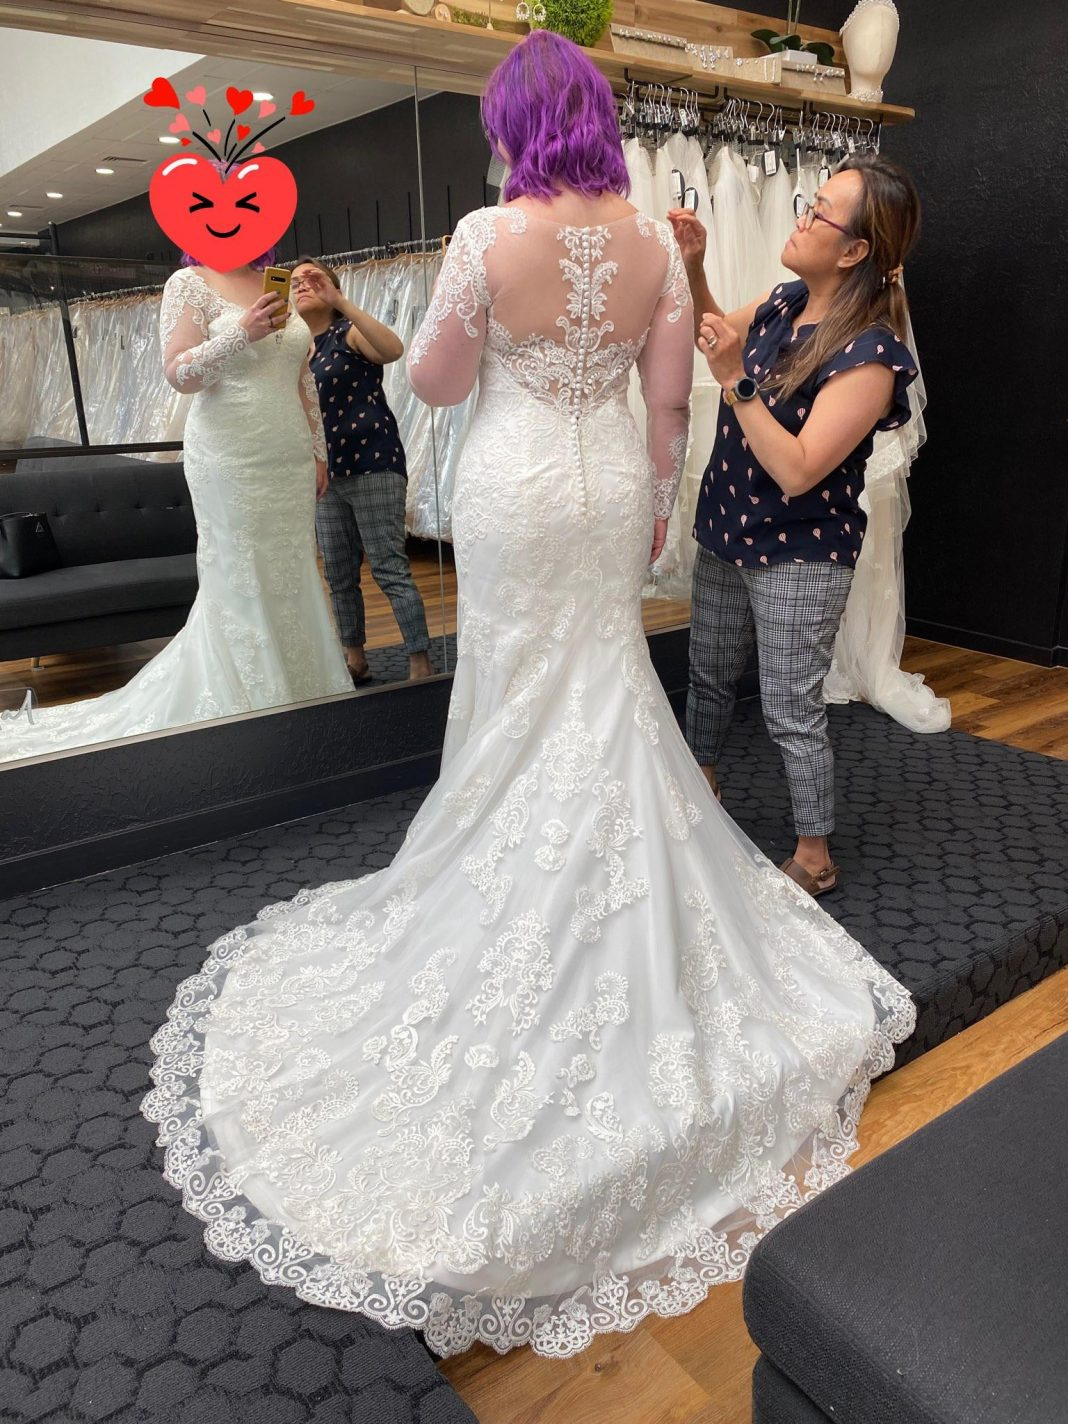 Finished my alterations! They did an AMAZING job with the illusion back! I had them add some appliqué to cover up the shapewear, but still keep the illusion feel.